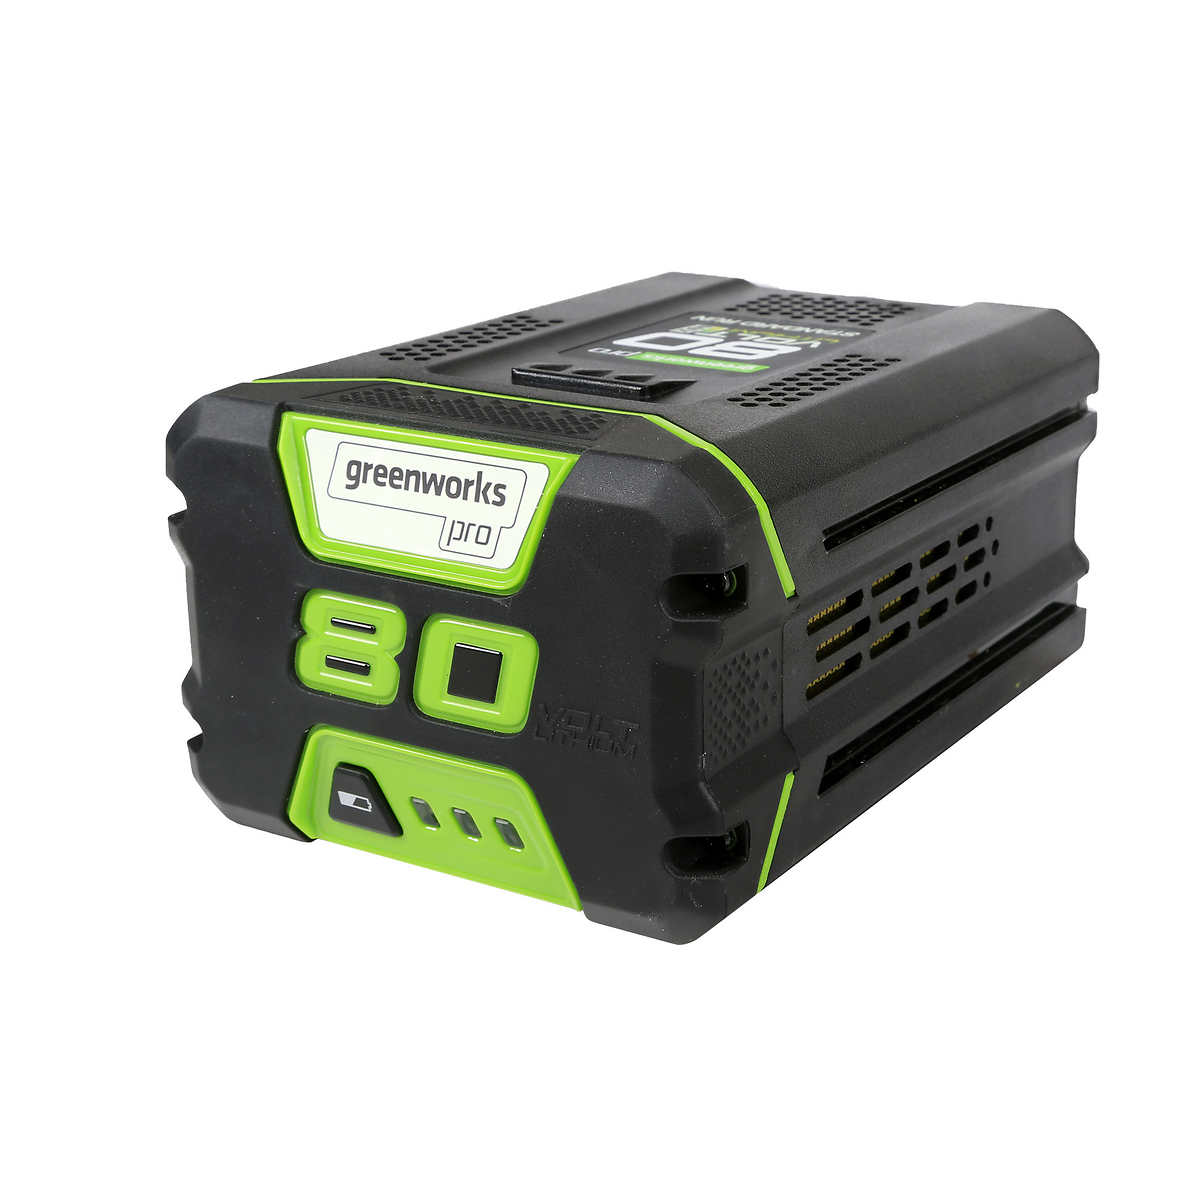 Greenworks Pro 80 V 2 Ah or 5 Ah Replacement Battery